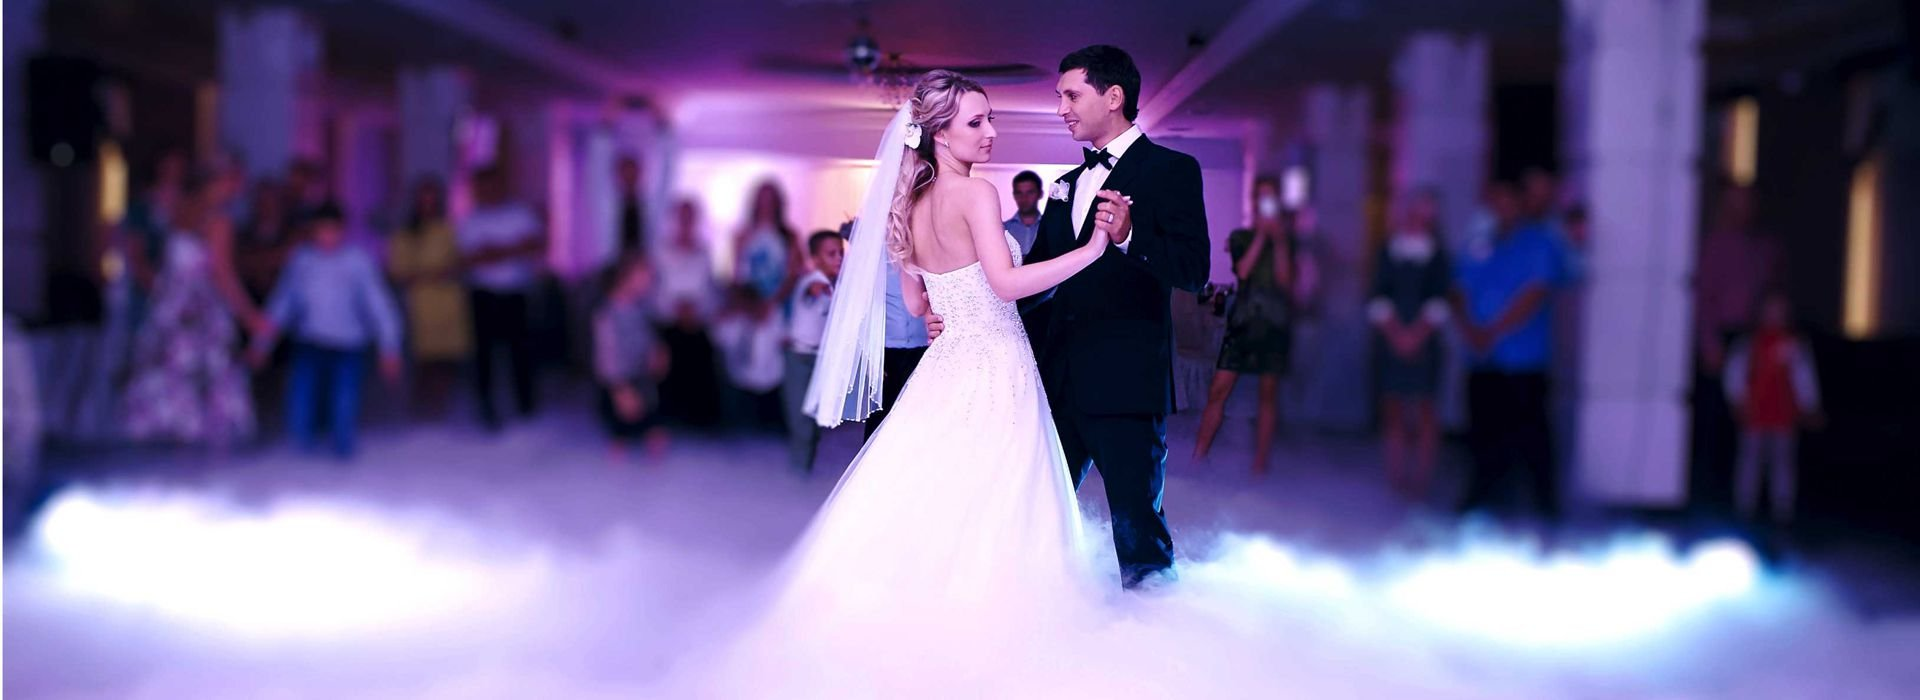 Houston Bride and Groom Dancing On A Cloud for their First Dance at their Wedding, Houston Wedding DJ